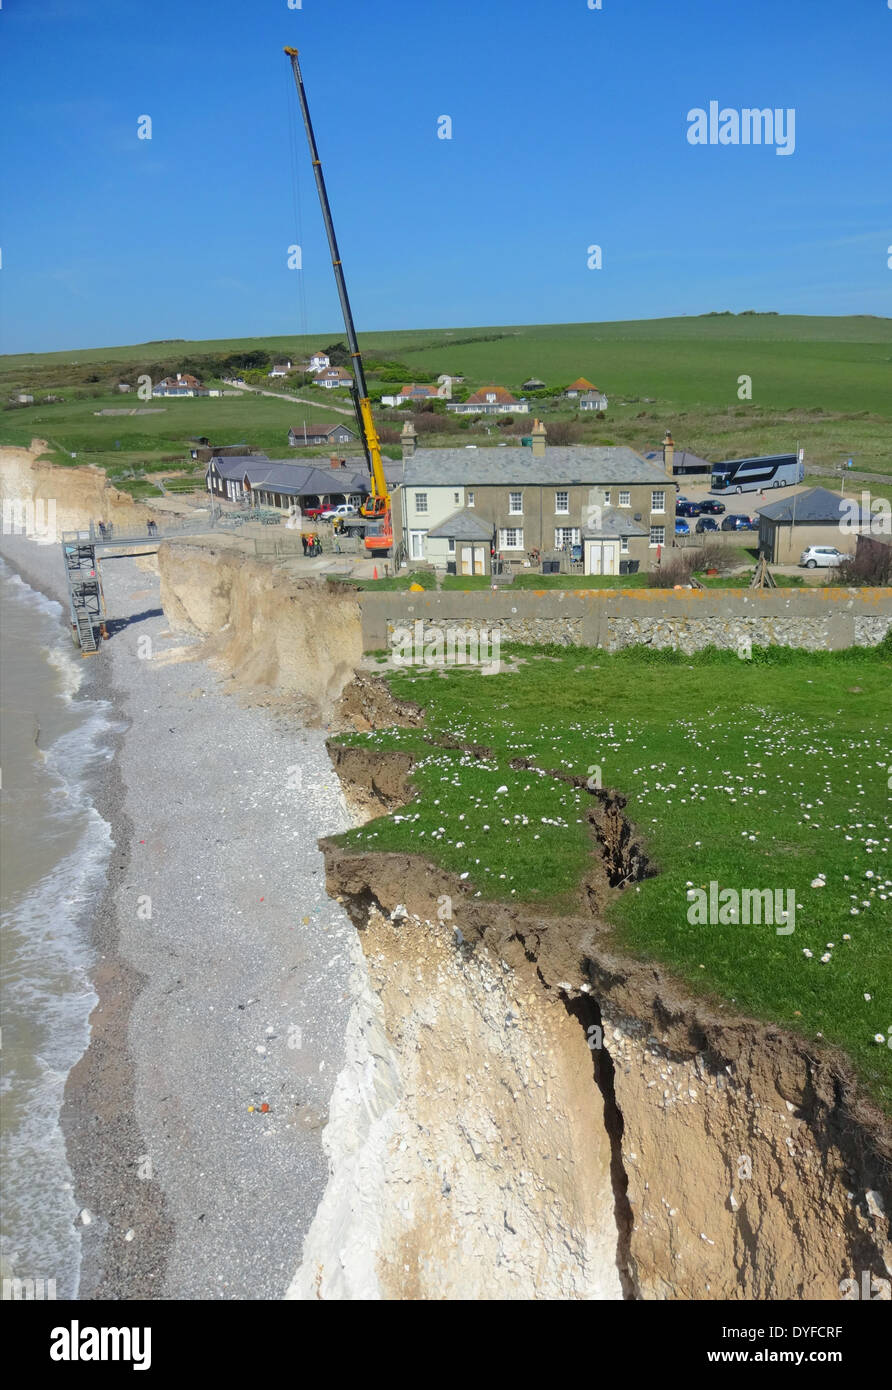 Birling Gap, East Sussex, UK..16th April 2014..Final day of demolition at Coastguard cottages. Crane and basket brought in to safely remove overhanging cliff face debris.All equipment will be removed from site tomorrow. Rock falls still continue along the fragile chalk cliffs.This section of cliff still hangs on the crack and chasm below very clear in this picture. Photographer used specialist equipment and did not take risks. Credit:  David Burr/Alamy Live News - Stock Image